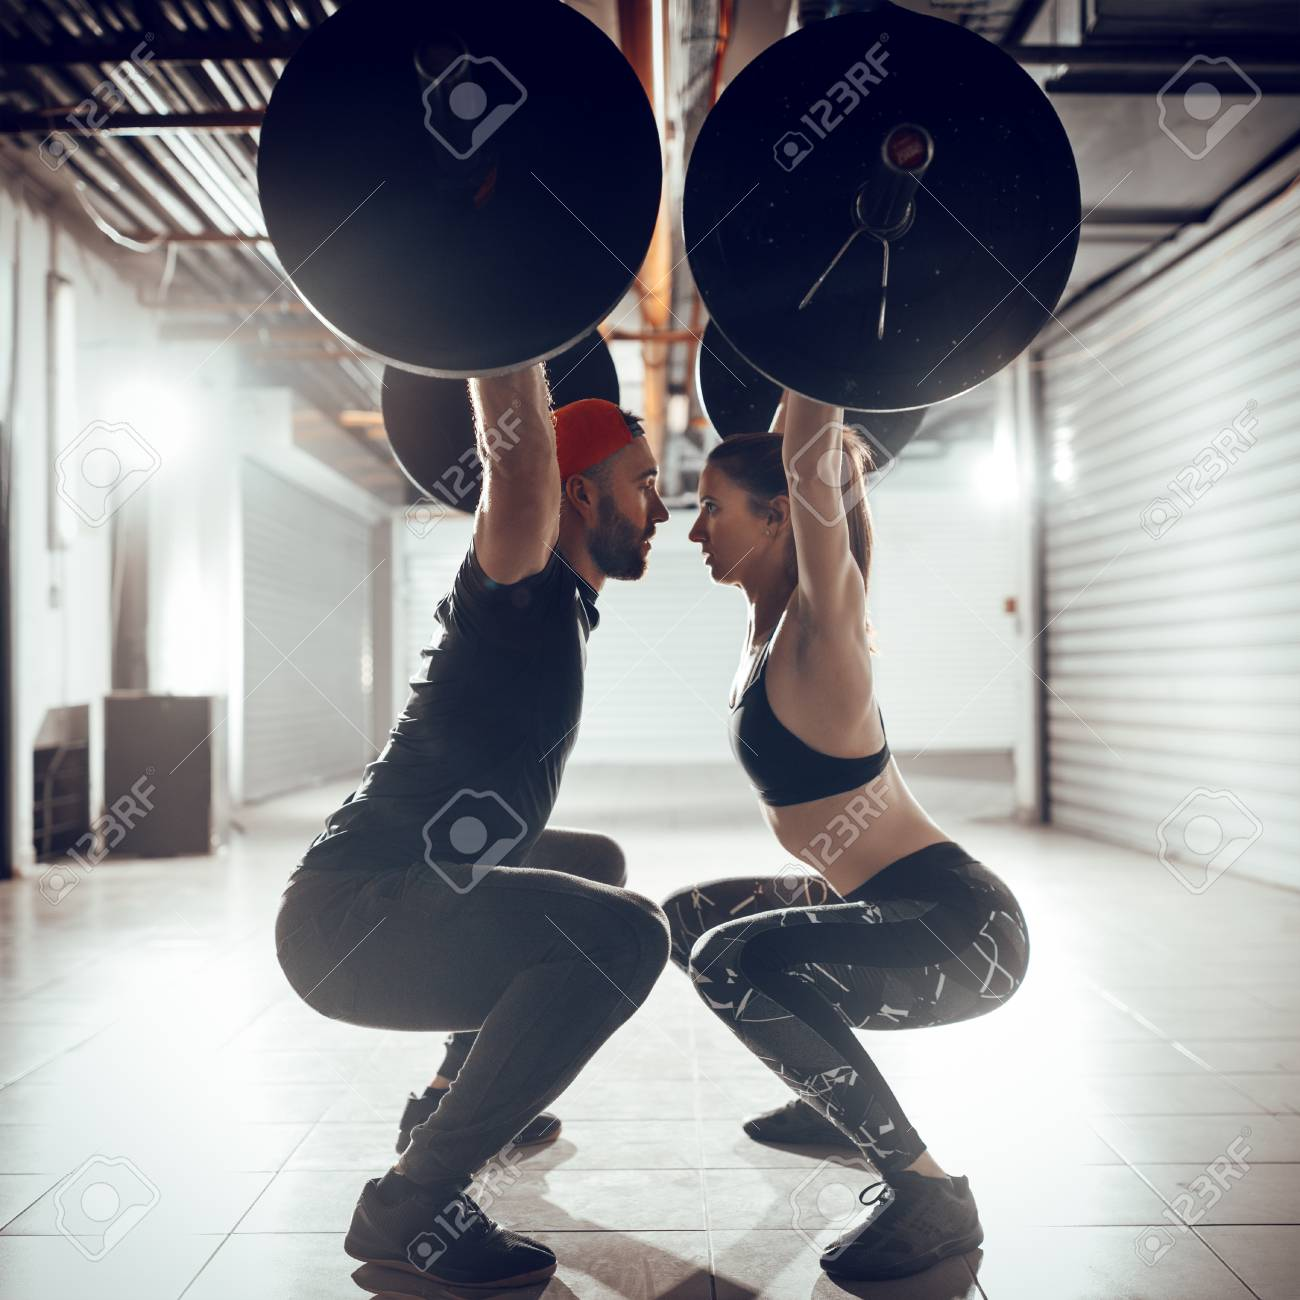 Young muscular couple doing overhead squat exercise with barbell